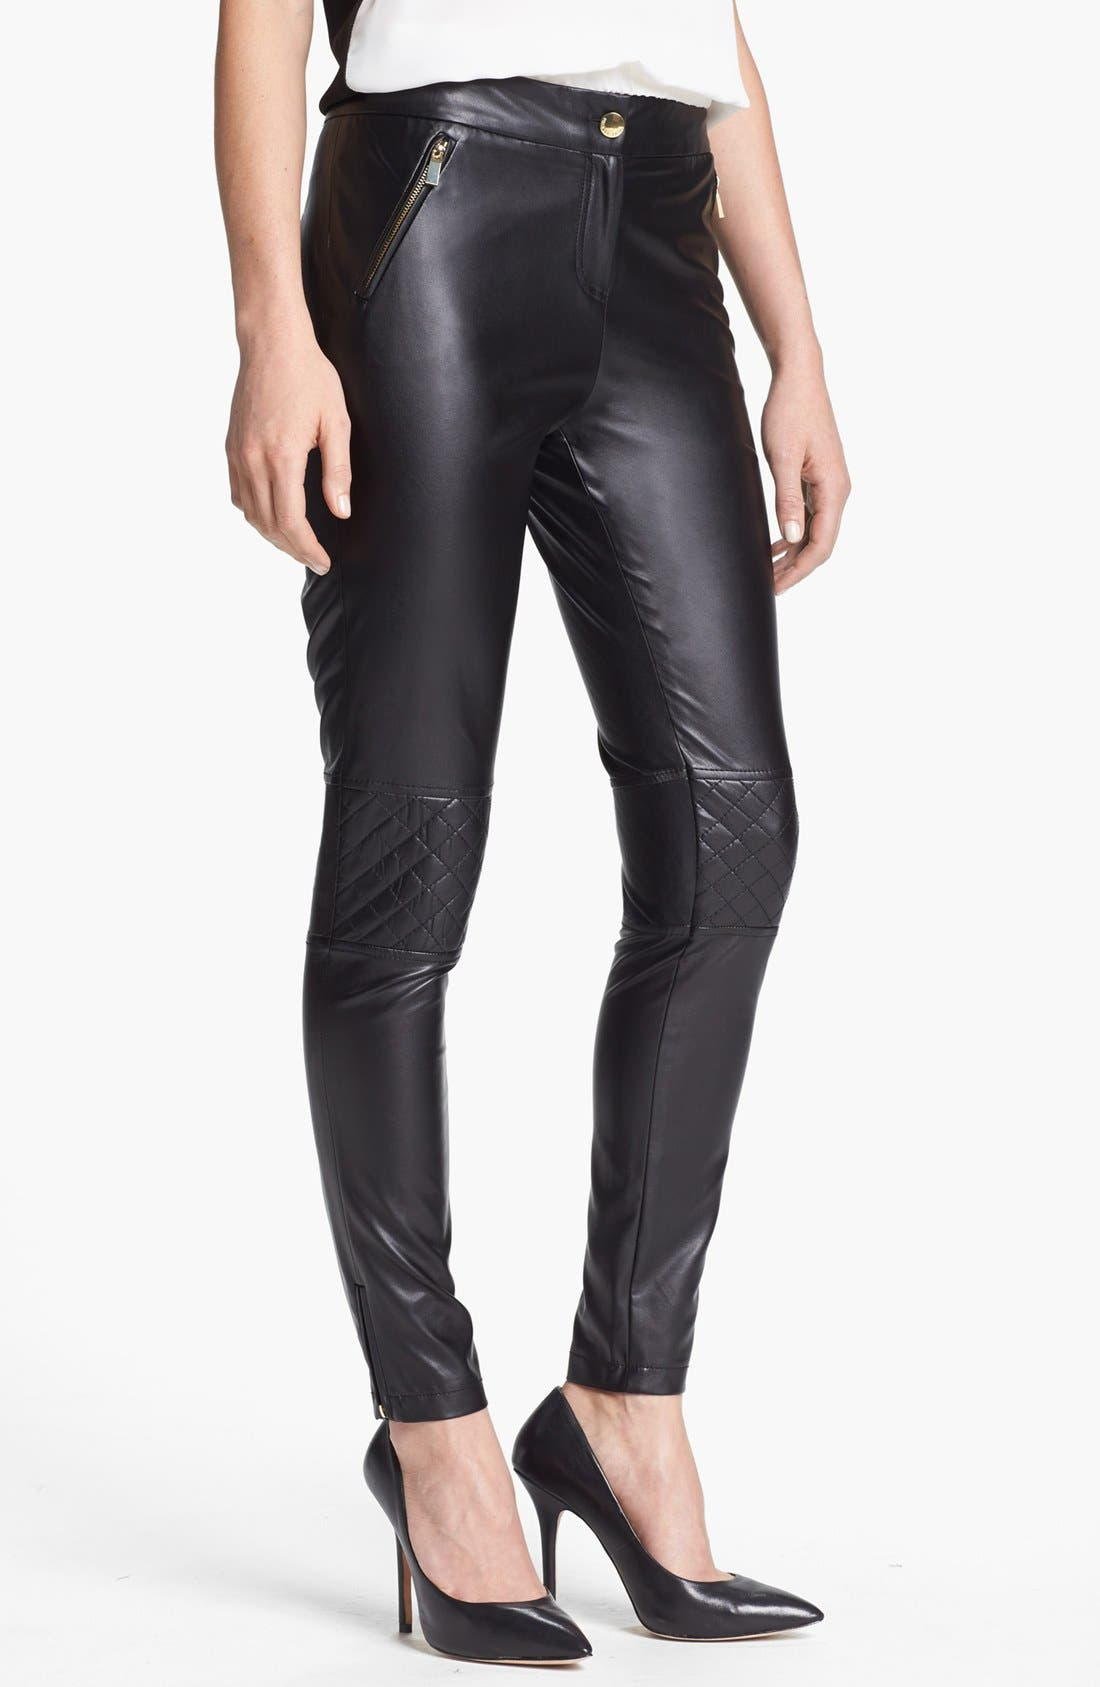 Alternate Image 1 Selected - Vince Camuto Quilted Detail Faux Leather Pants (Regular & Petite)